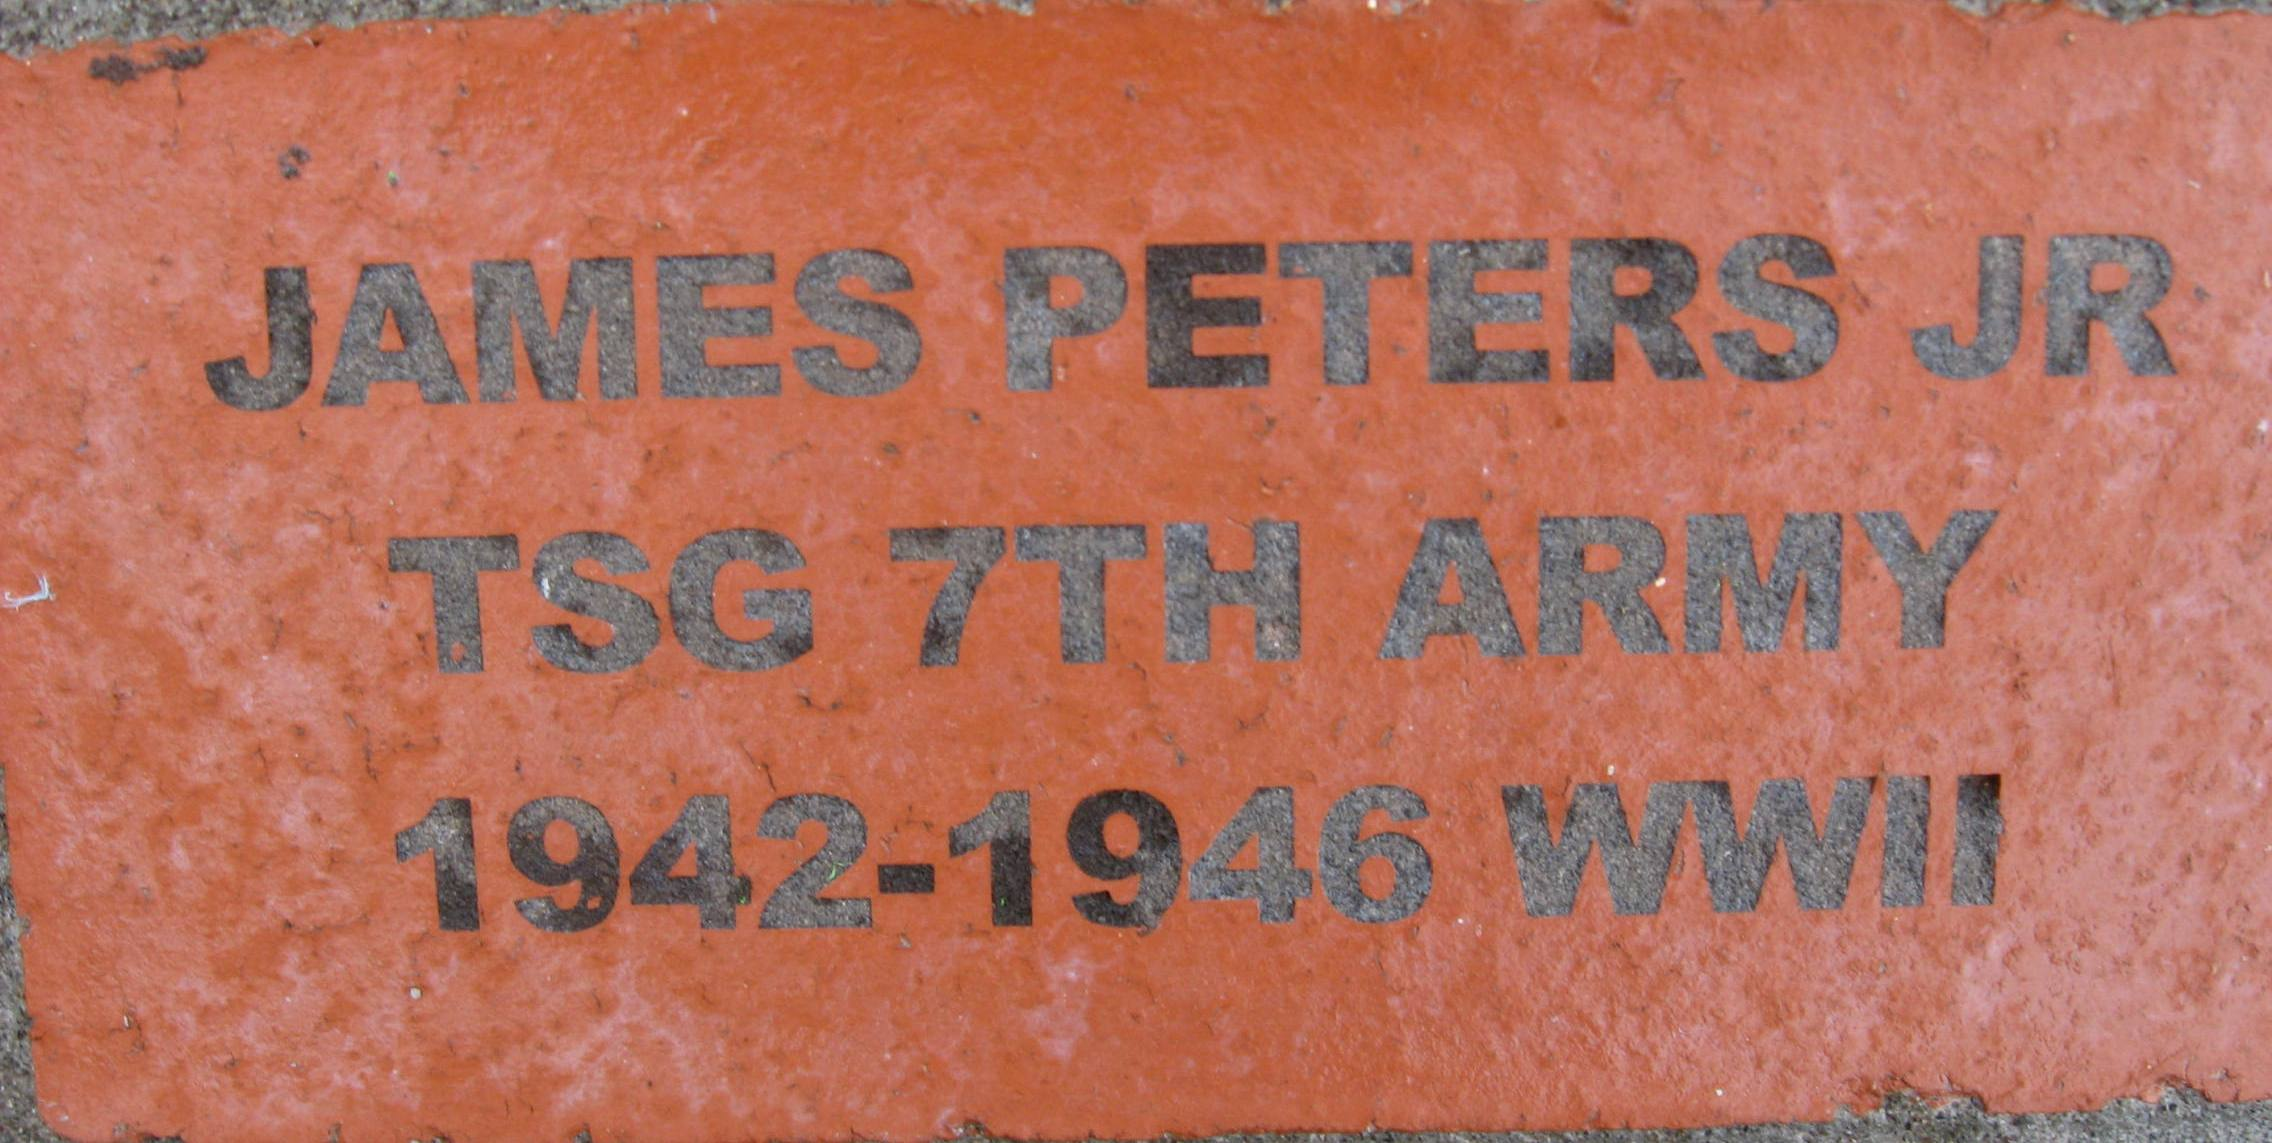 Peters Jr James